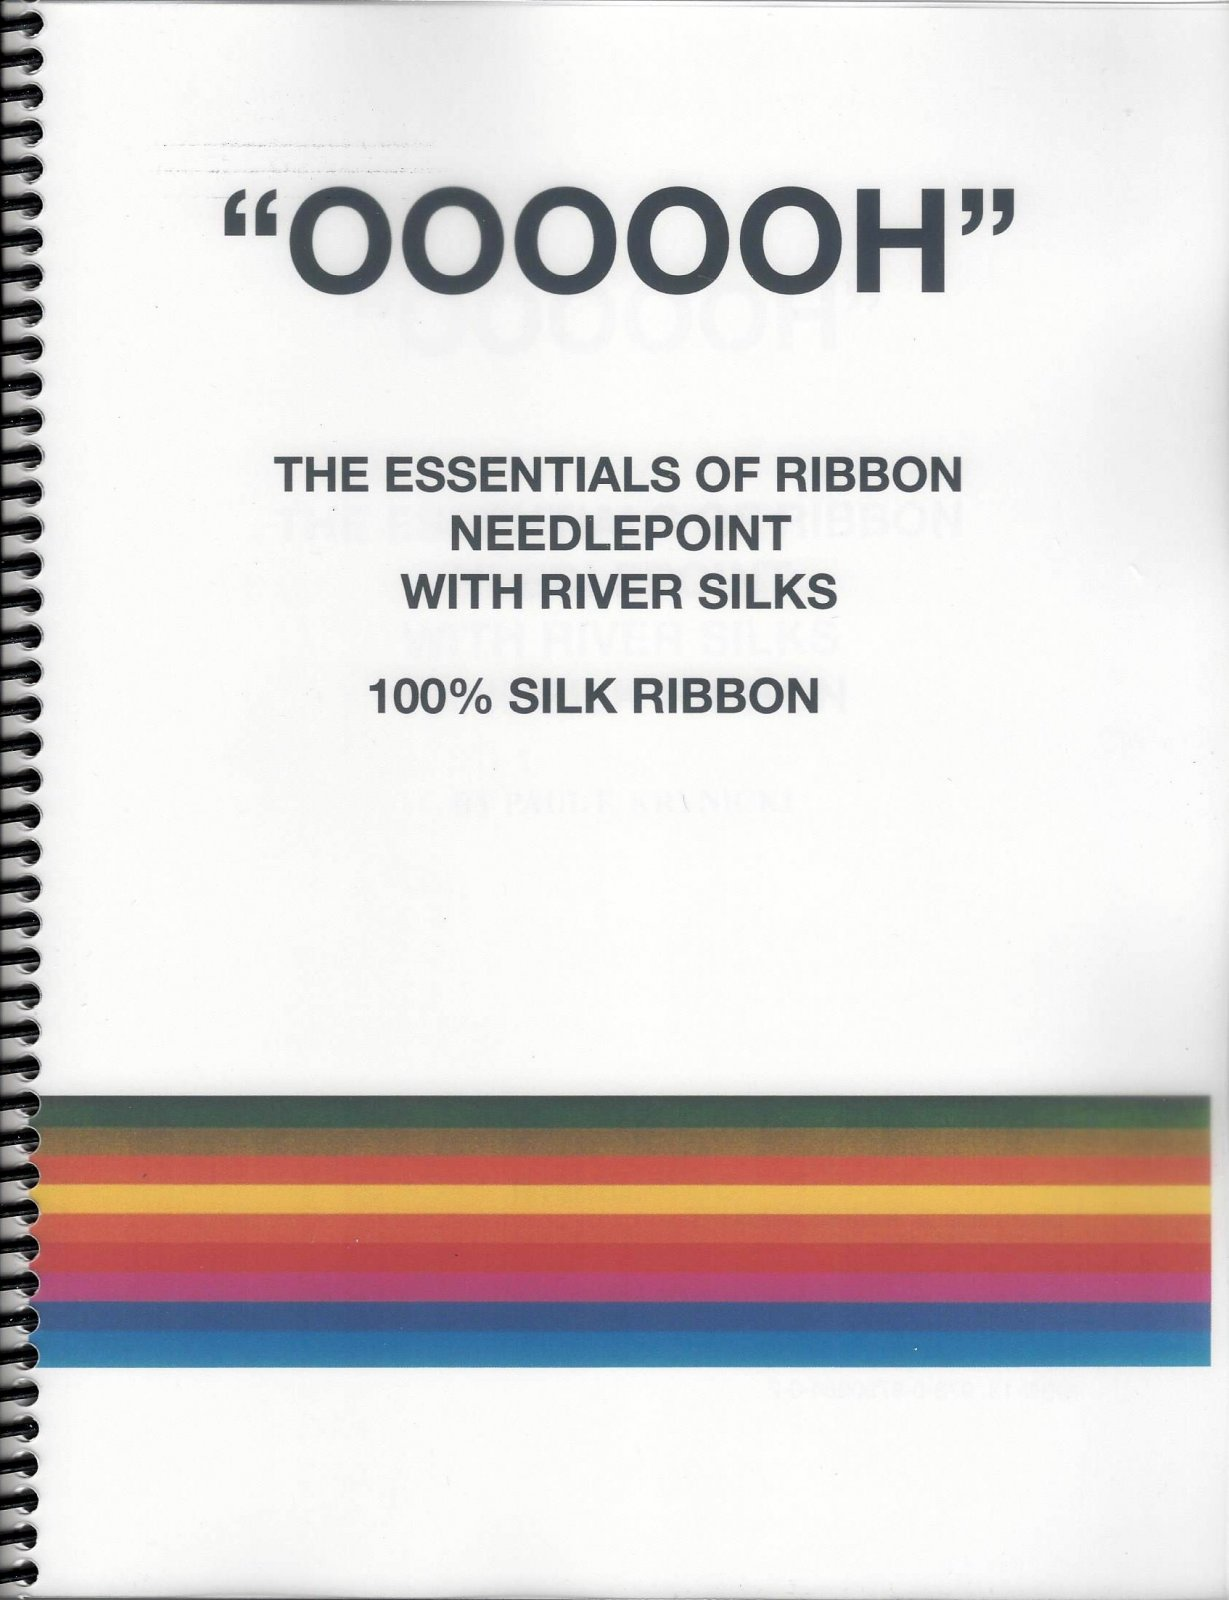 OOOOOH The Essentials of Ribbon Needlepoint